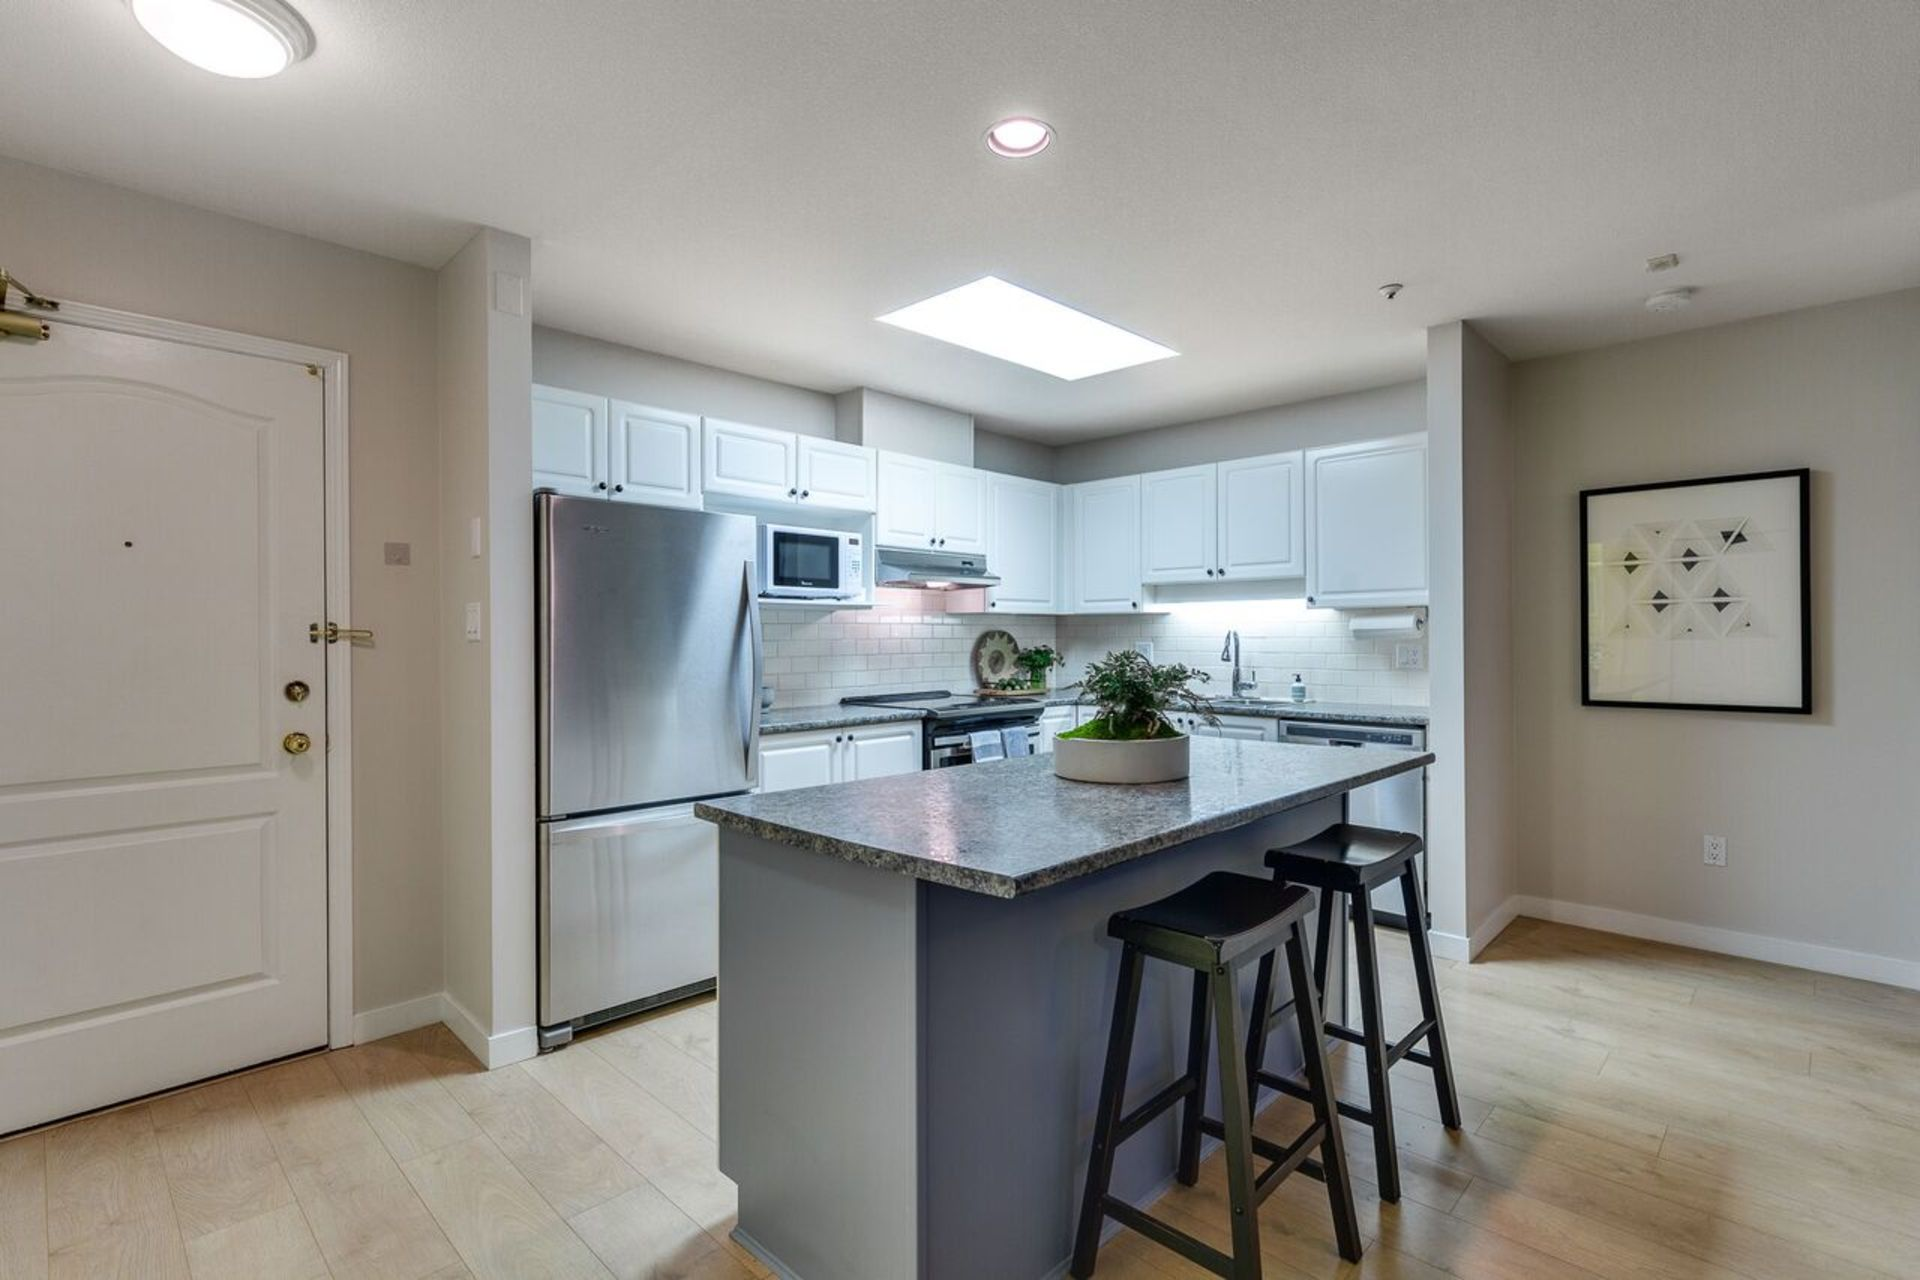 brc8svev at 309 - 2968 Burlington Drive, North Coquitlam, Coquitlam